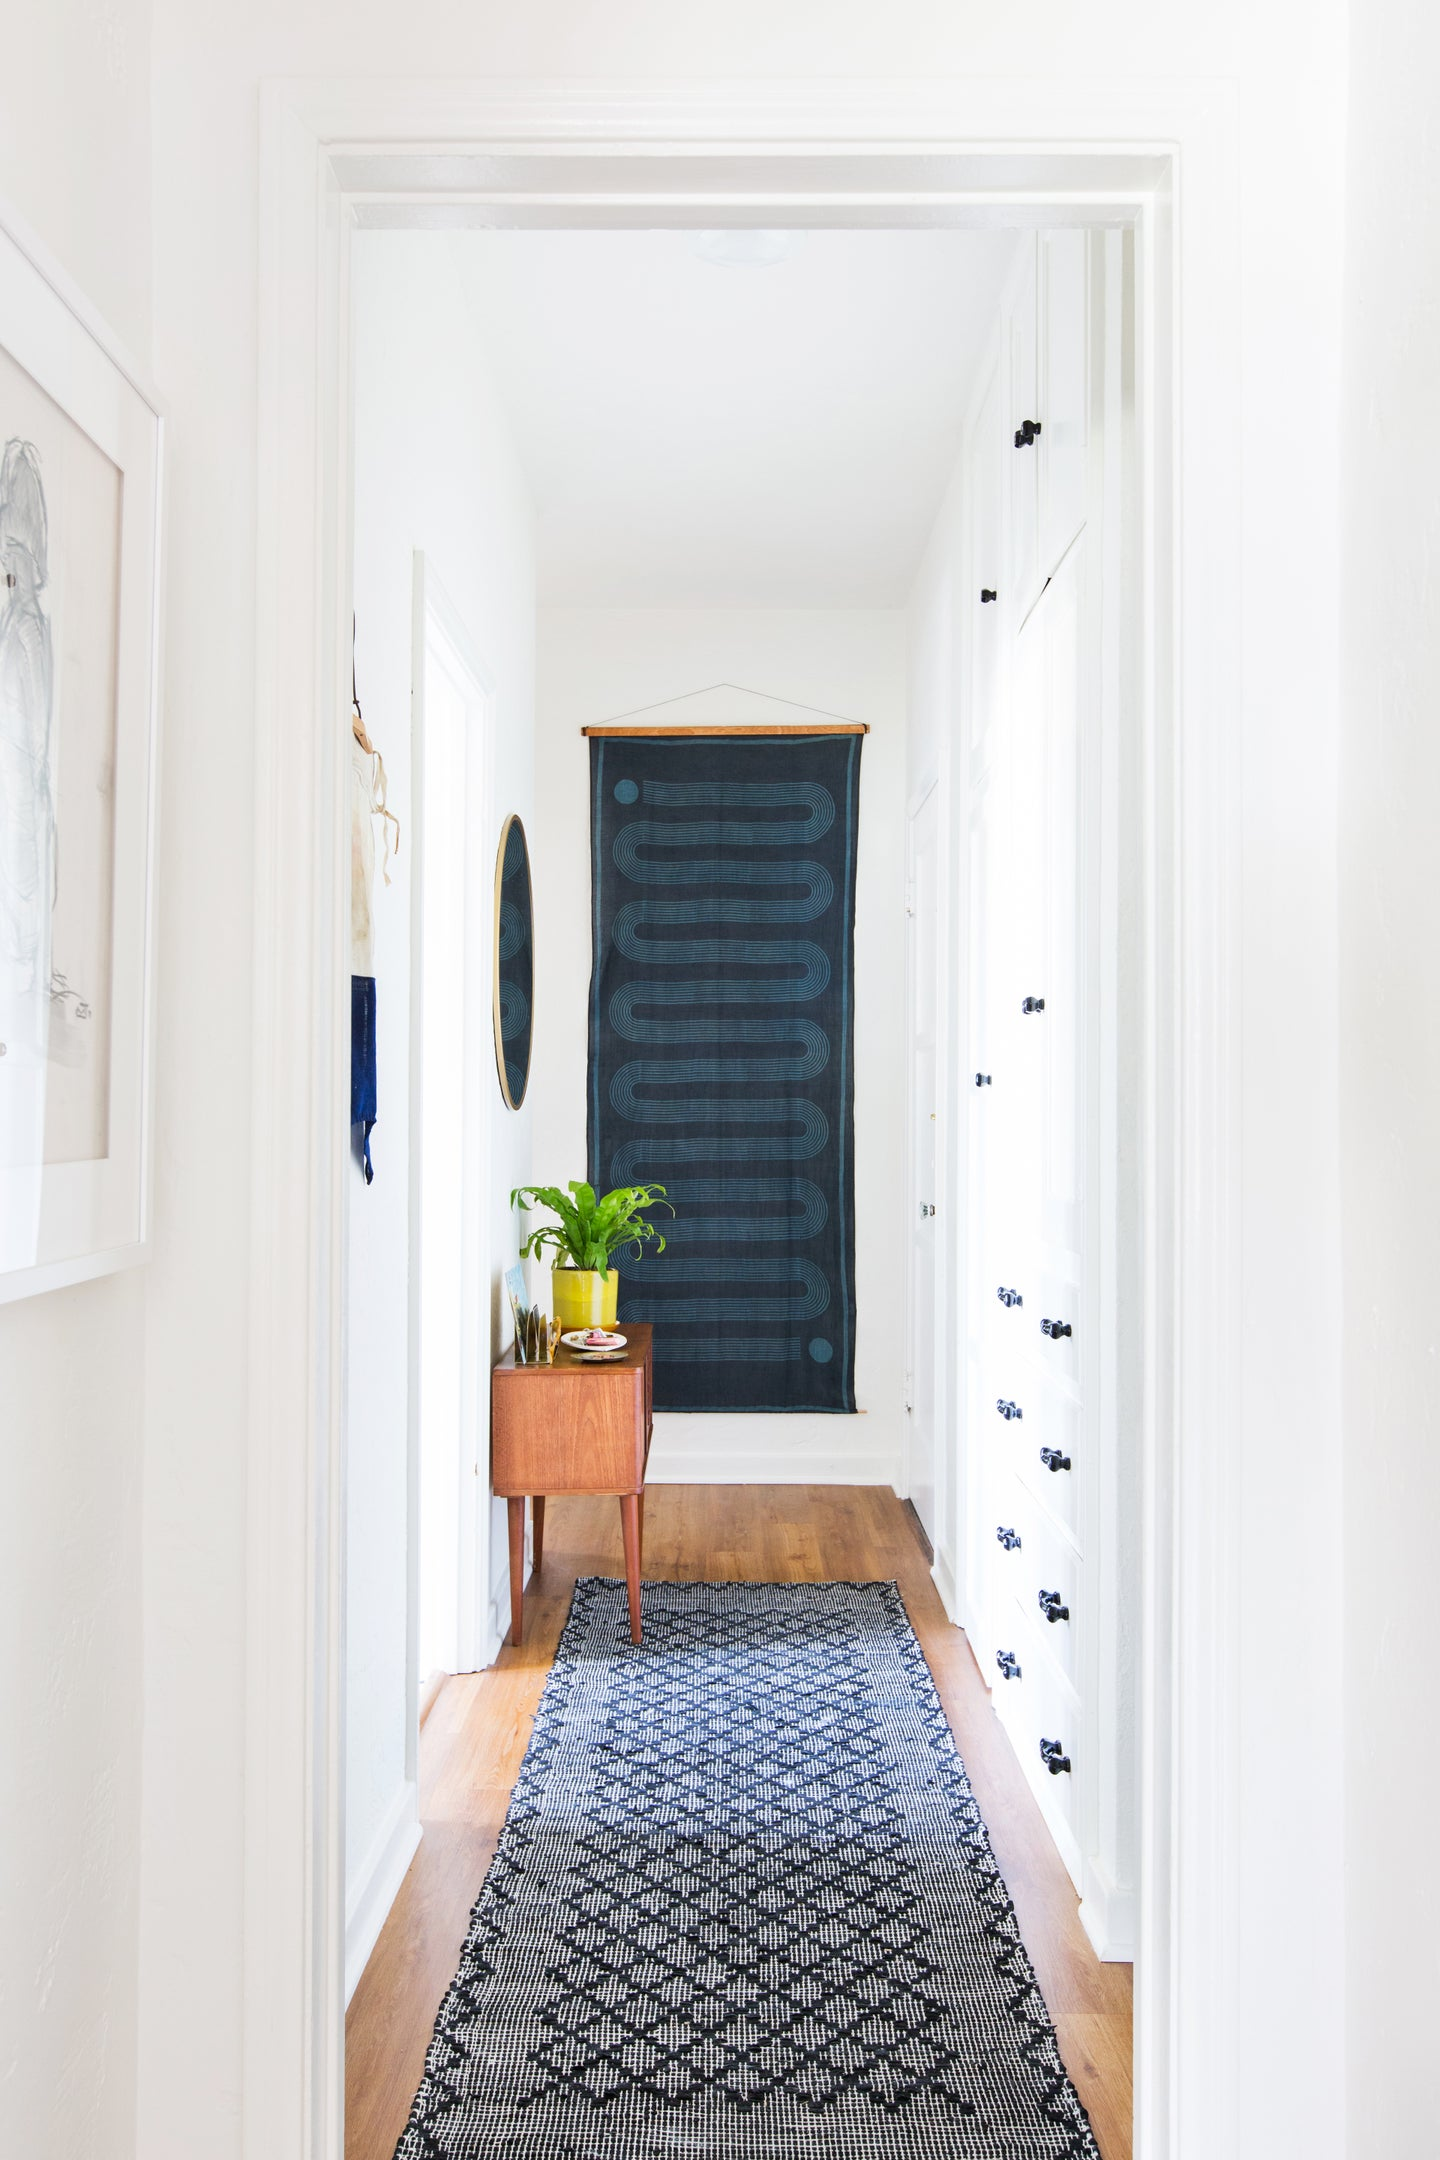 white hallway with a blue runner and blue wall hanging at the end